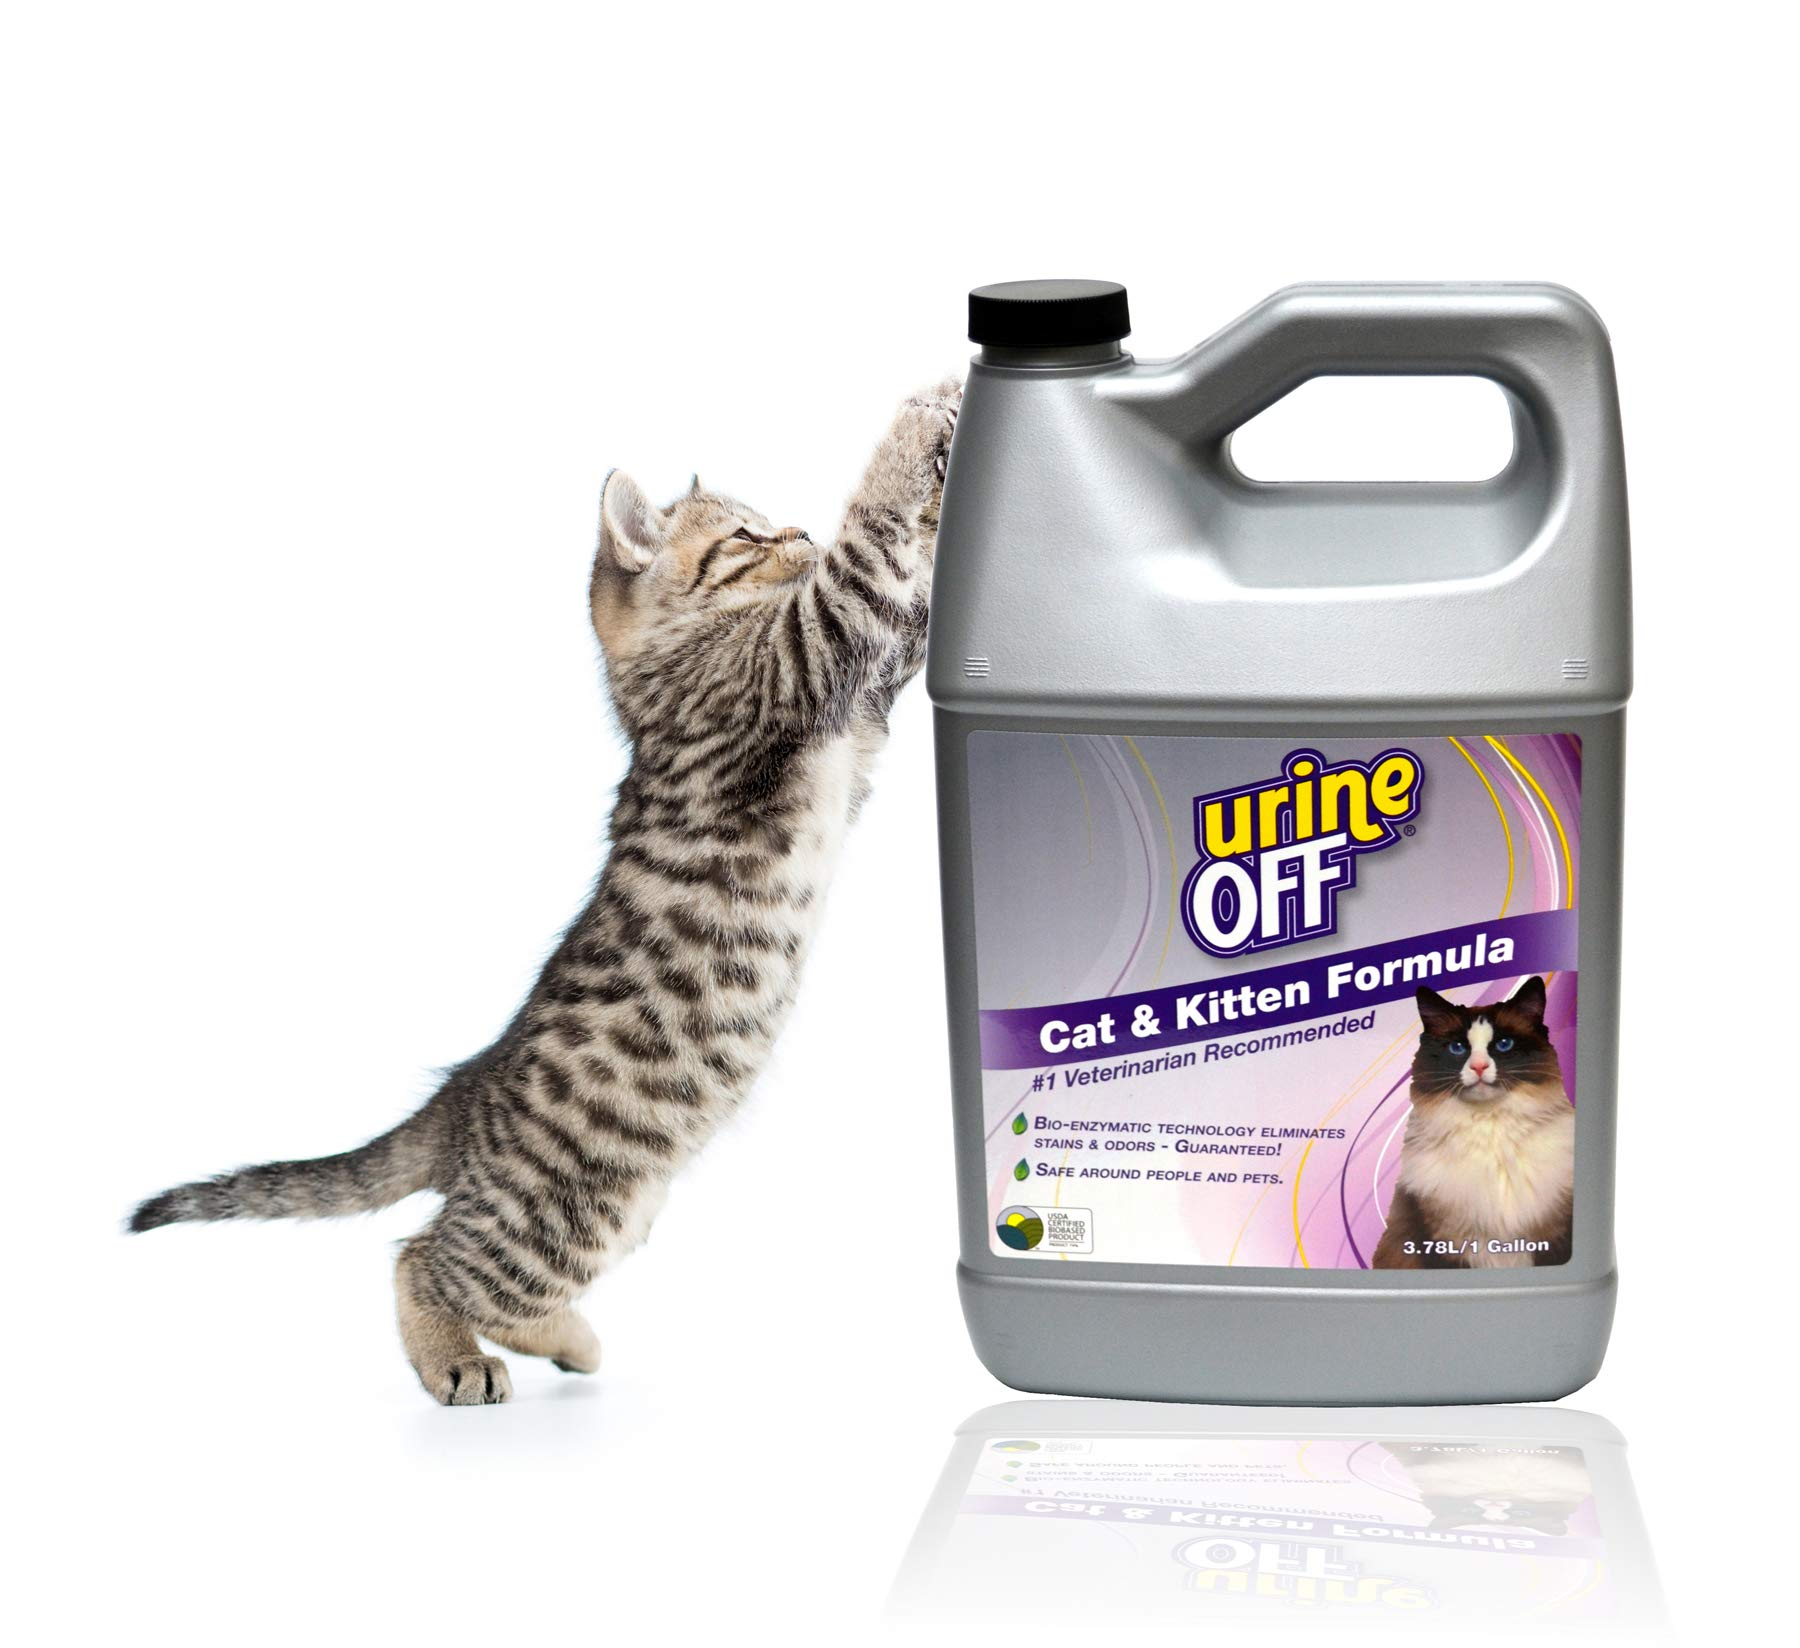 Urine Off Odor and Stain Remover for Cats, 1 Gallon by urineOFF